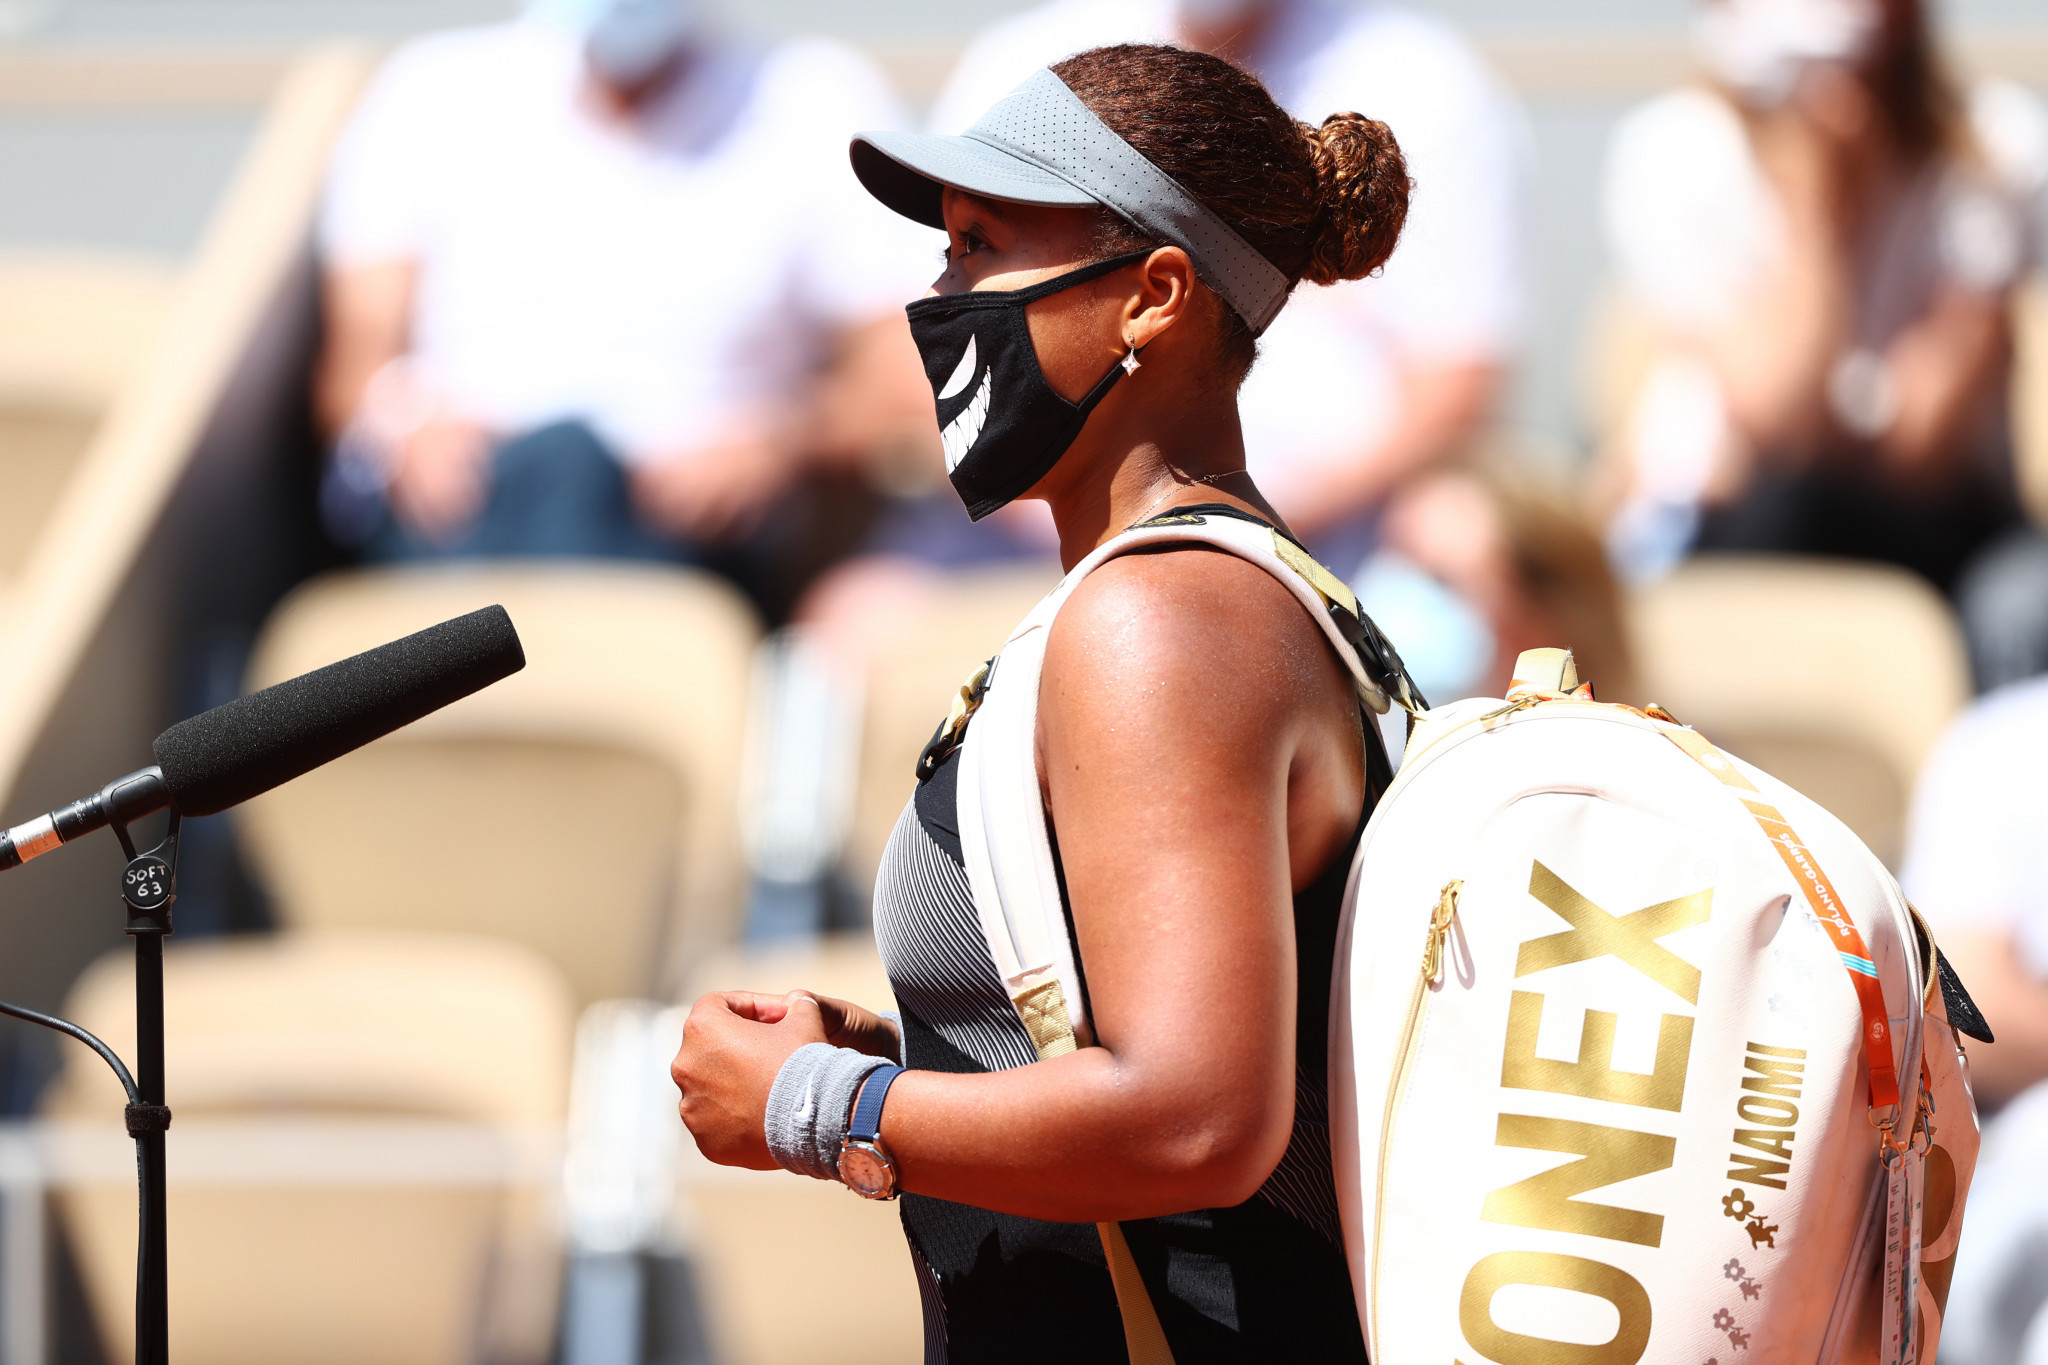 There are doubts over whether Naomi Osaka will participate at Wimbledon after pulling out of the French Open and this week's grass-court event in Berlin ©Getty Images